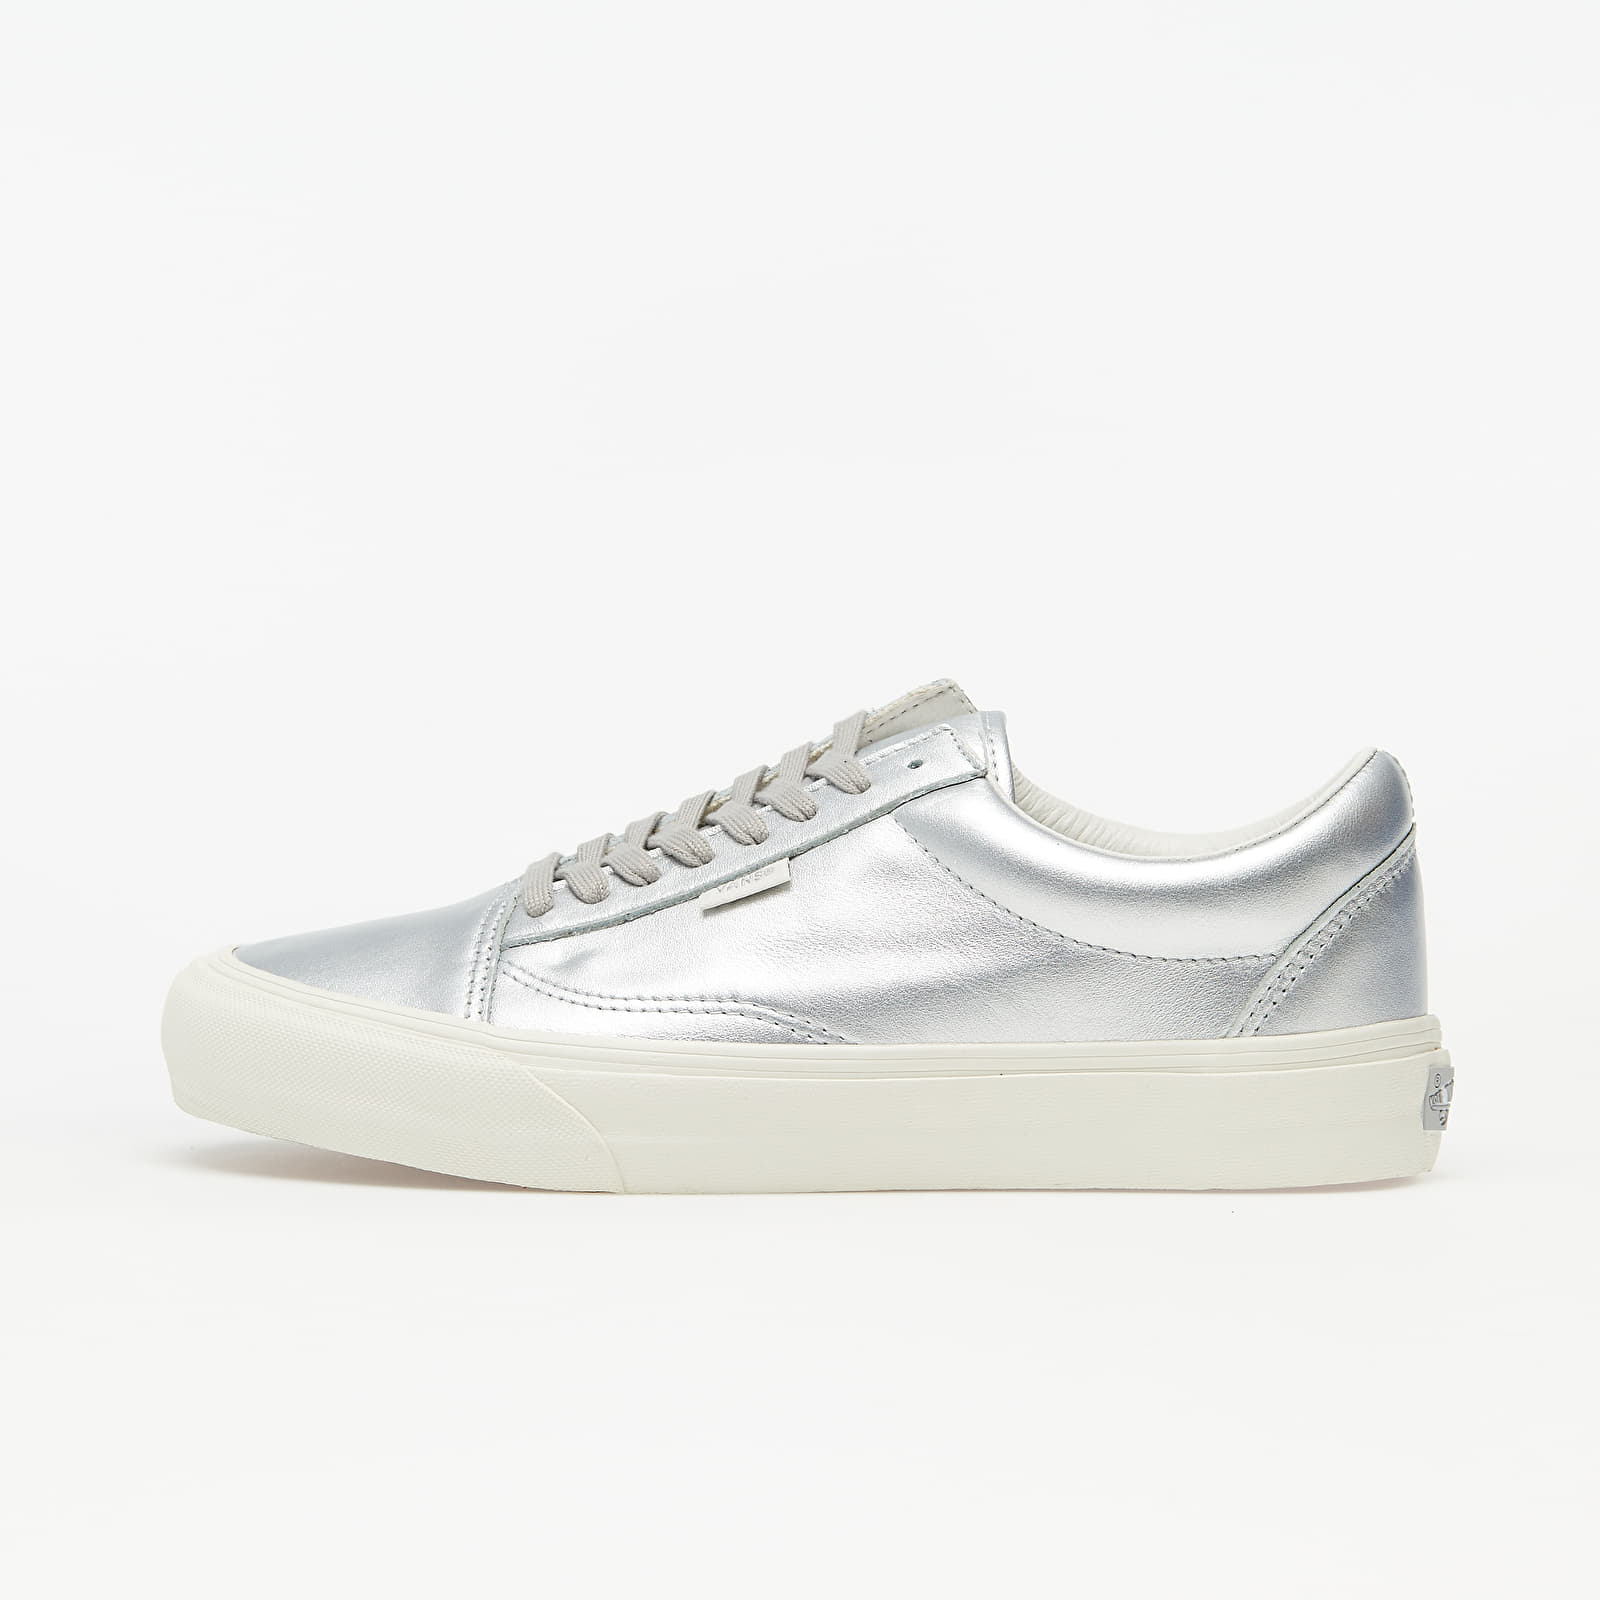 Мужская обувь Vans Old Skool NS VLT LX (Metals) Silver